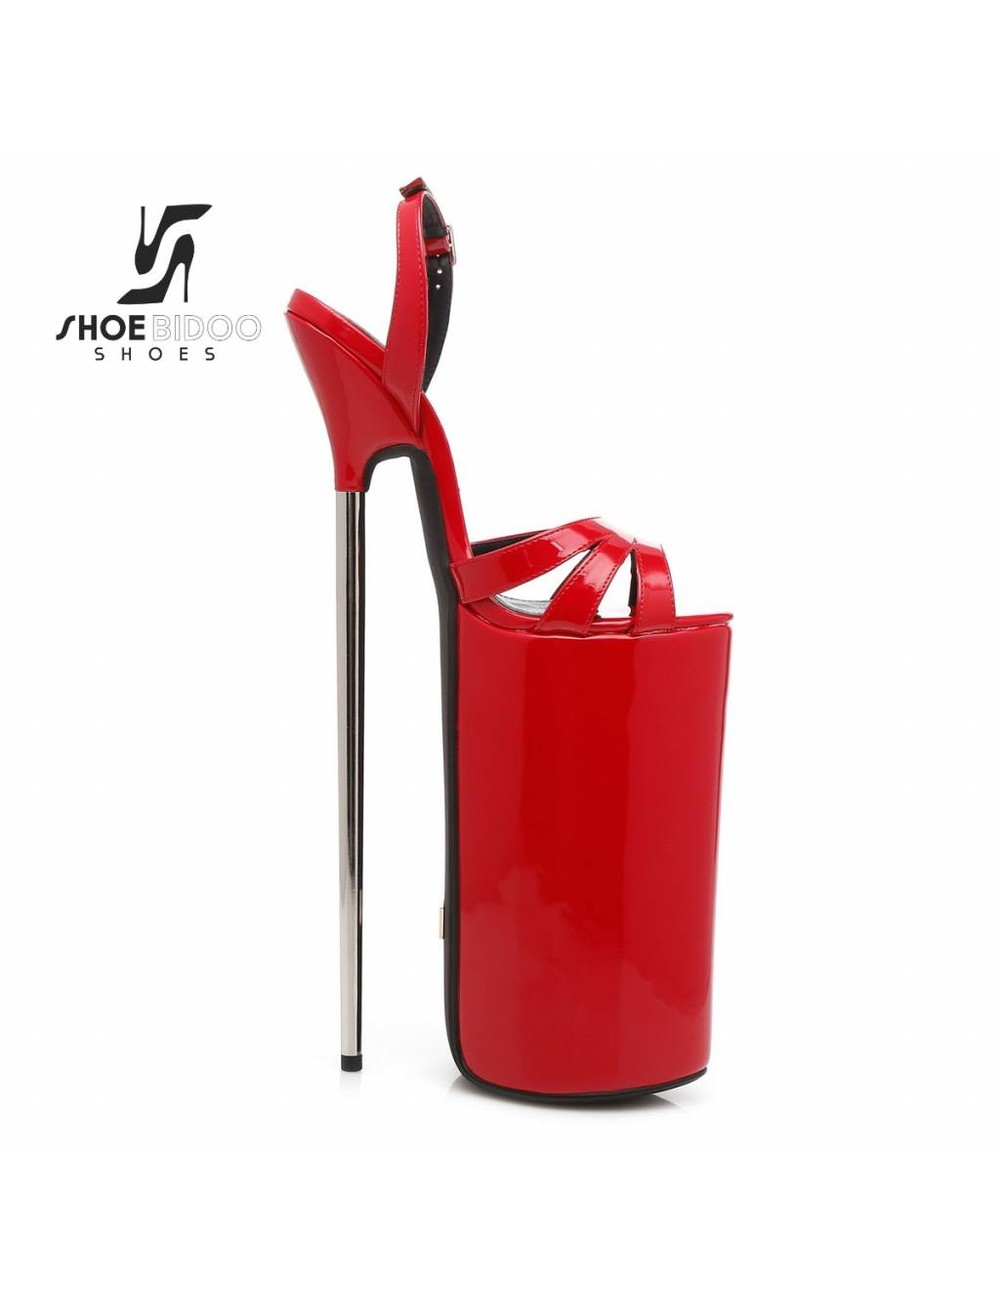 Giaro REd patent fetish monster sandals with ultra high silver metal heels